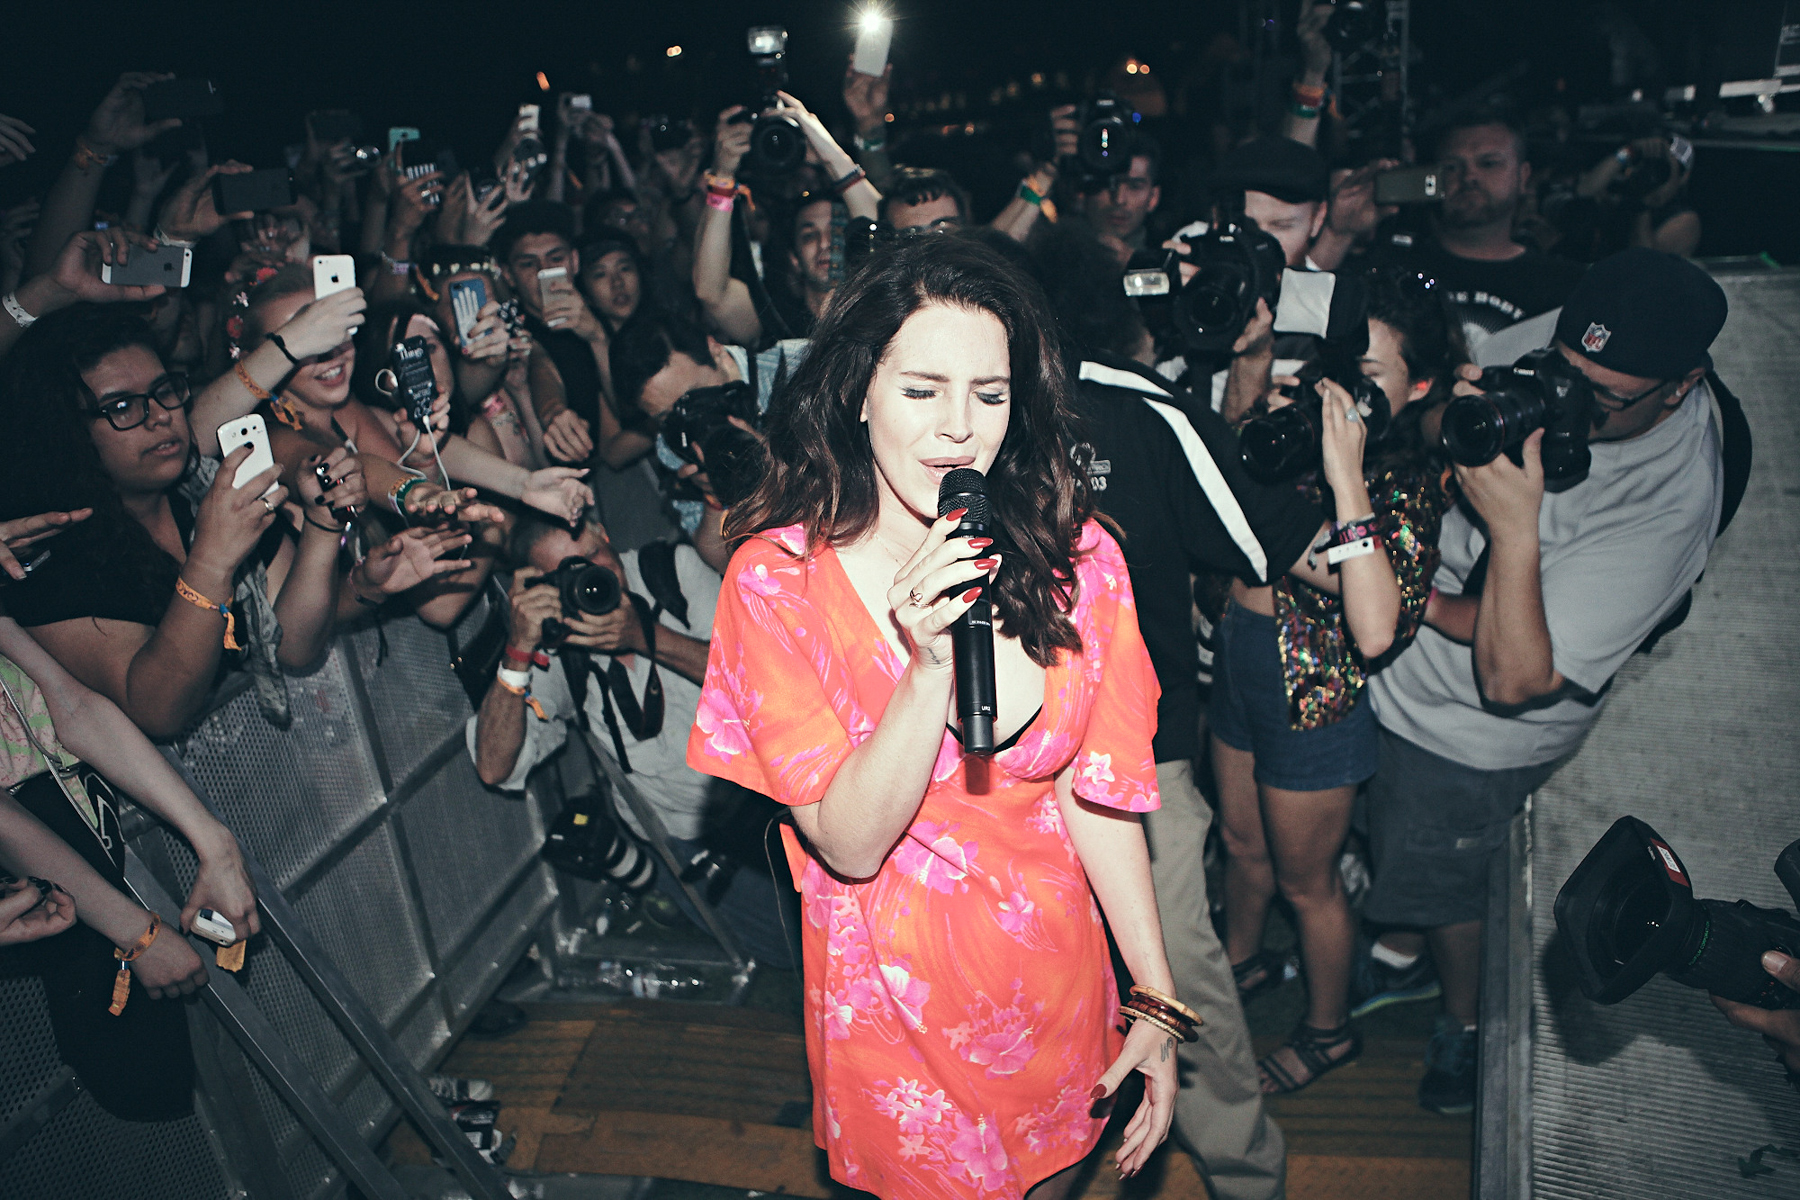 50 Best Things We Saw at Coachella 2014